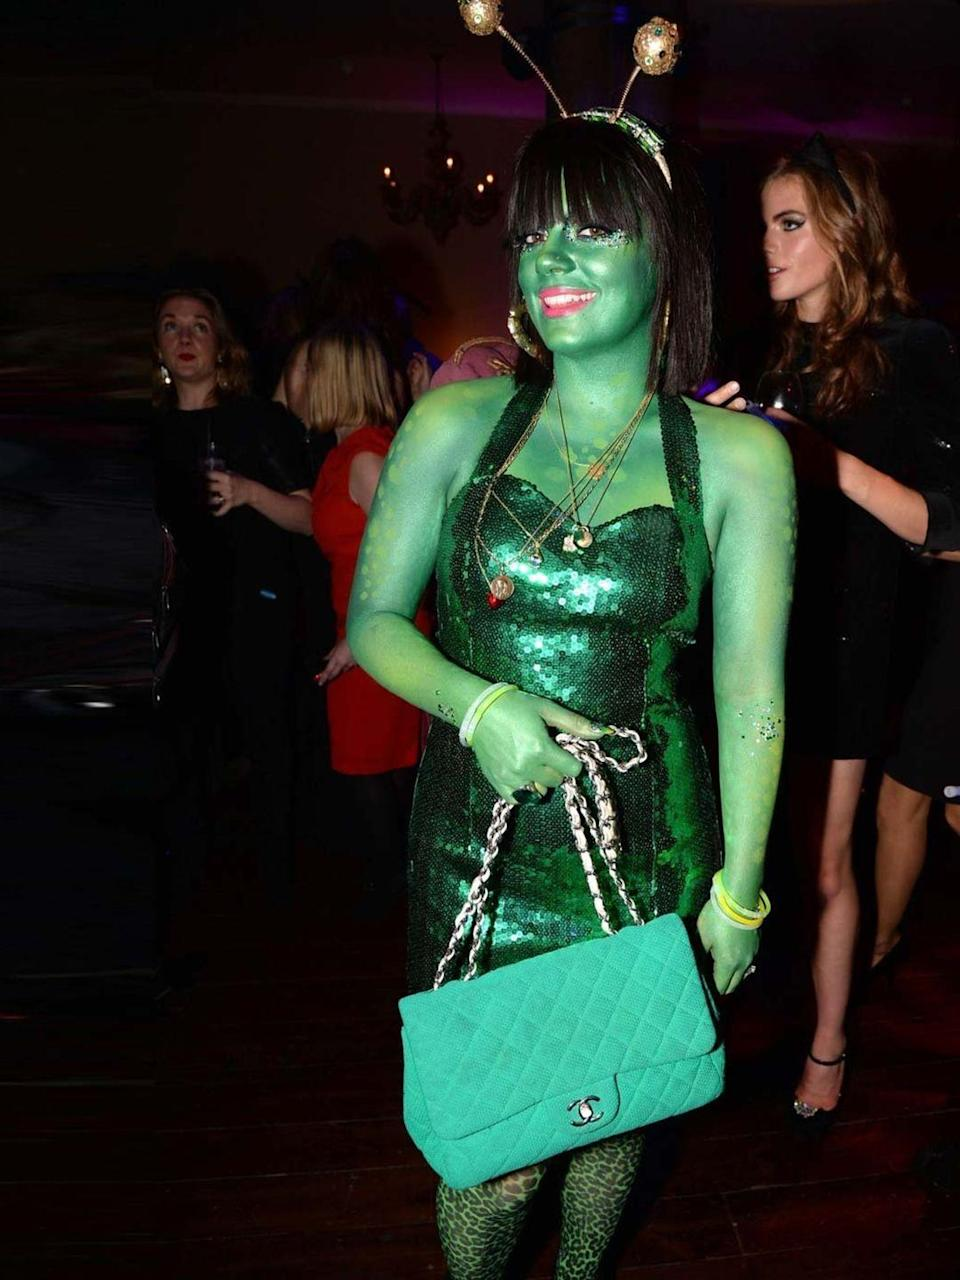 """<p><a href=""""http://www.elleuk.com/star-style/celebrity-style-files/lily-allen"""" rel=""""nofollow noopener"""" target=""""_blank"""" data-ylk=""""slk:Lily Allen"""" class=""""link rapid-noclick-resp"""">Lily Allen</a> in an alien costume at the UNICEF Halloween Ball, London, October 2013. </p>"""